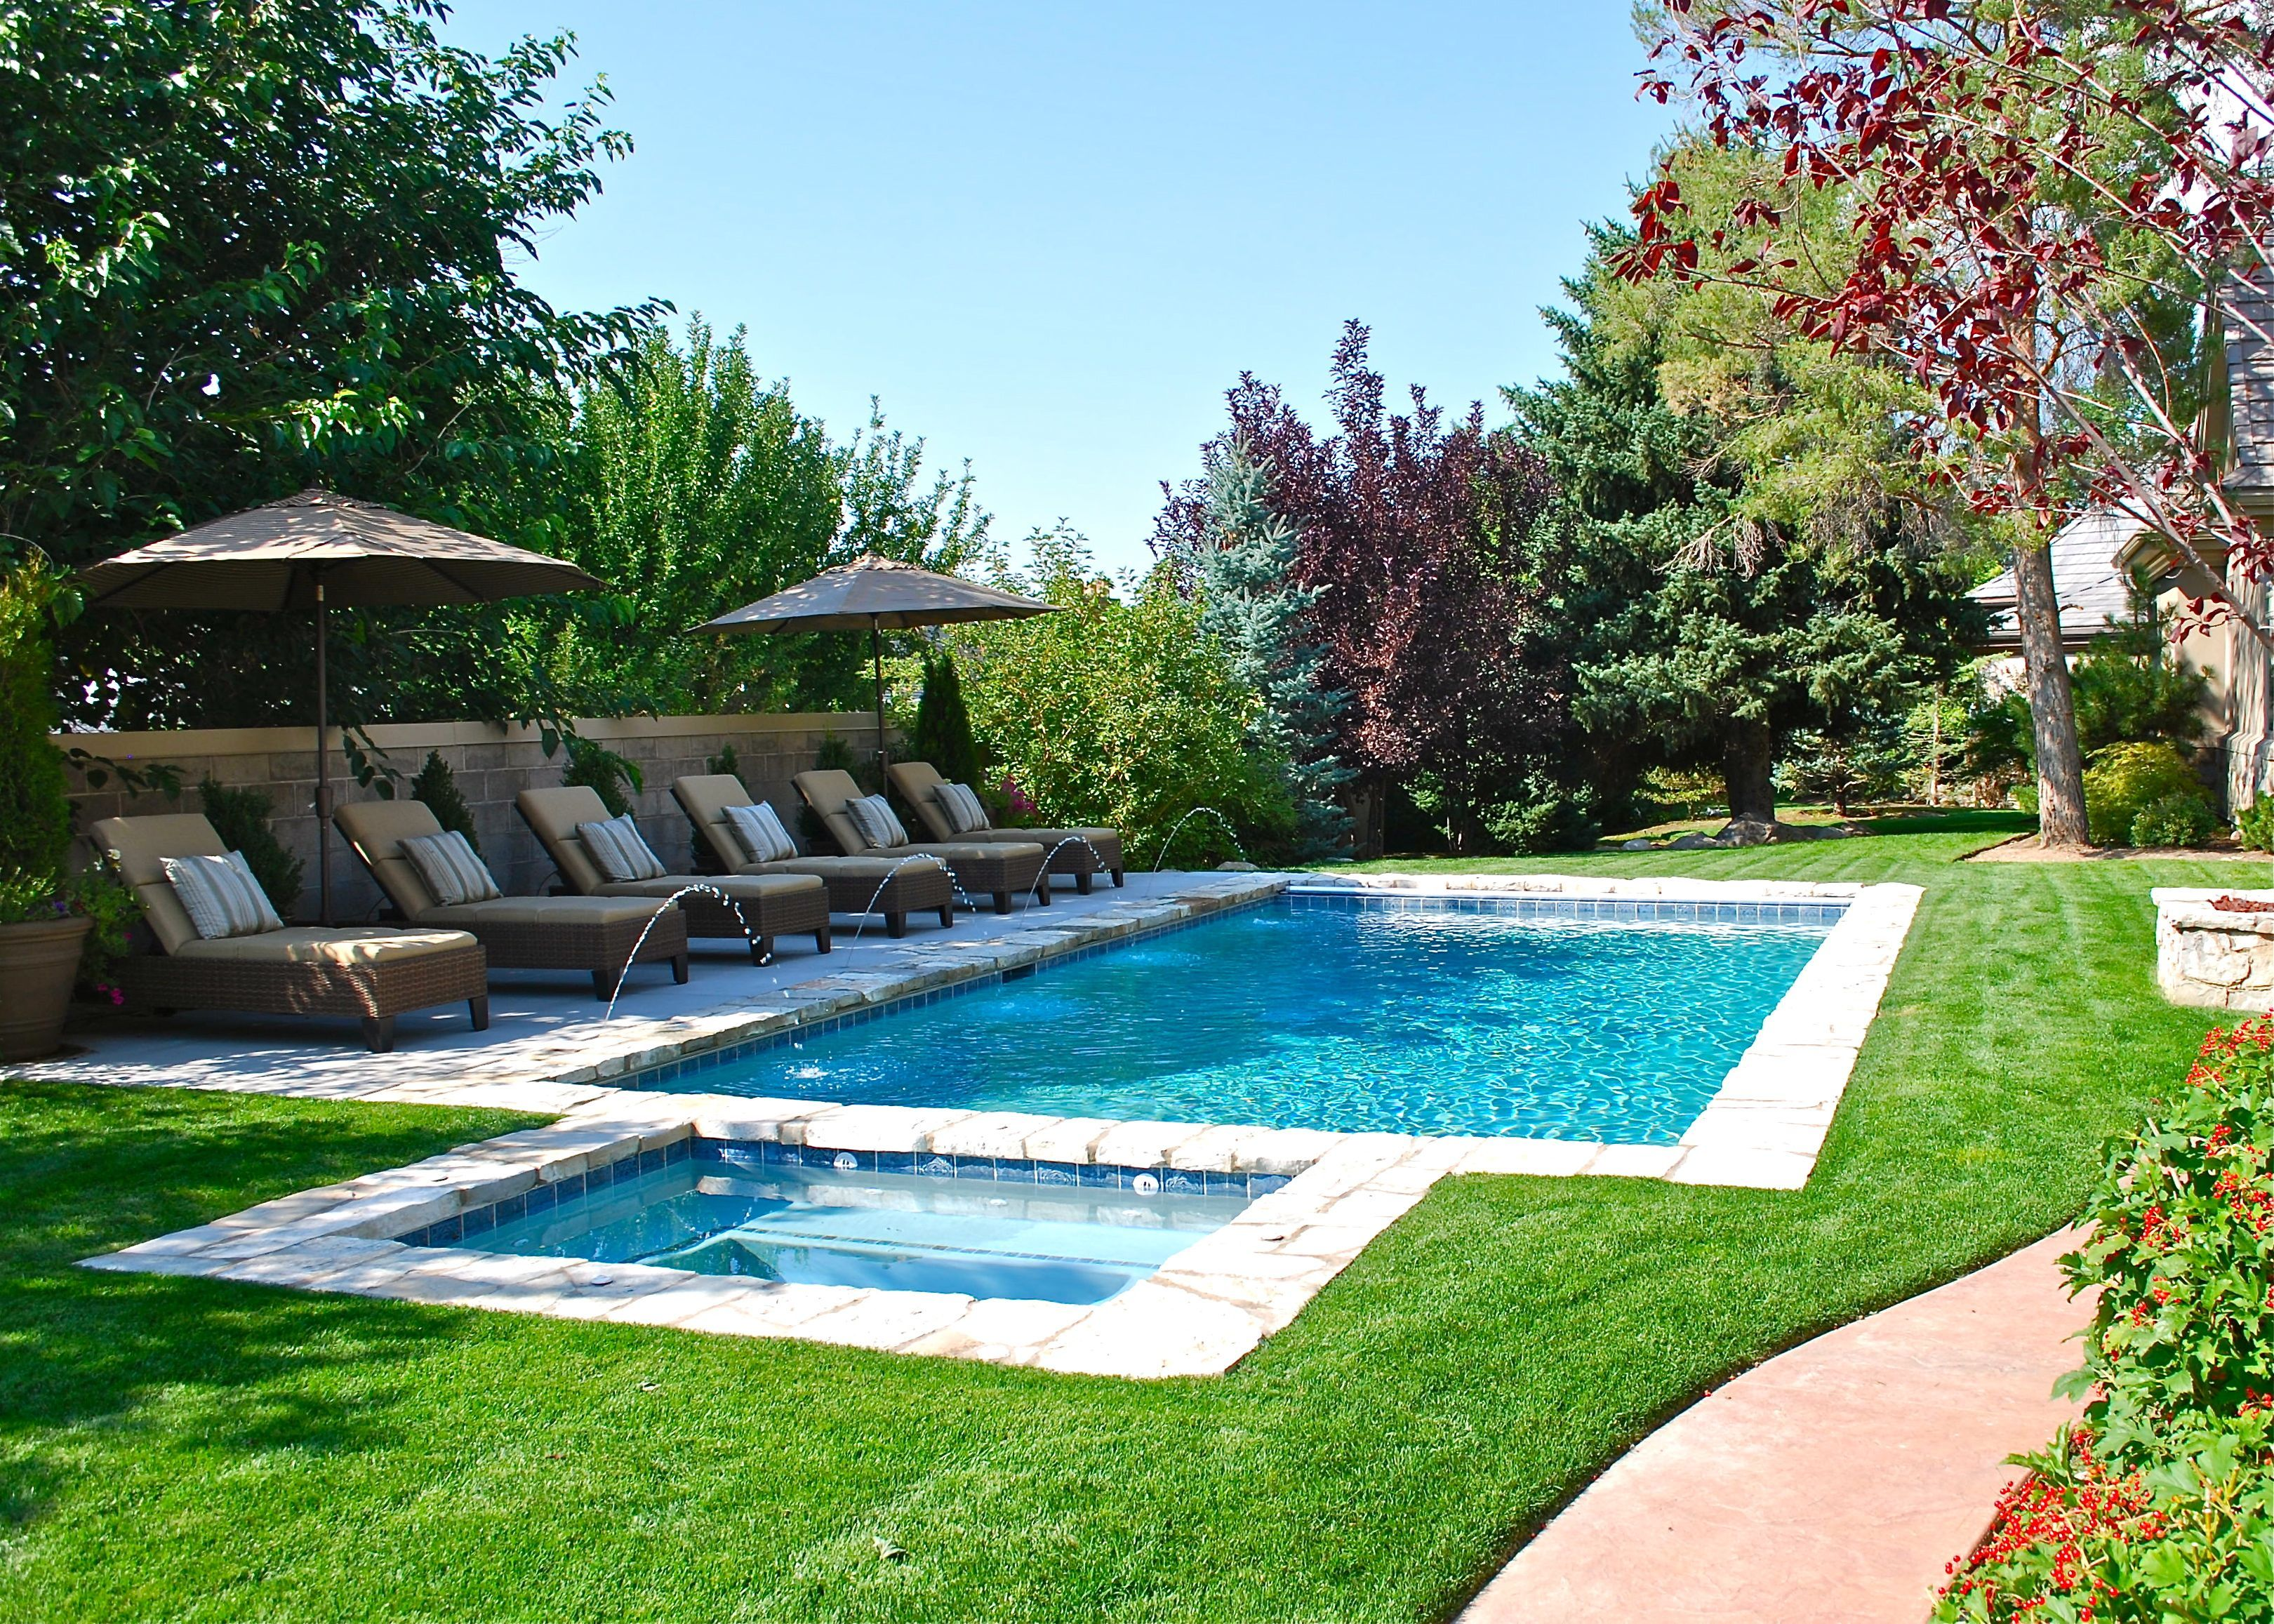 Backyard swimming pool with minimal decking deckjets and for Swimming pool spa designs